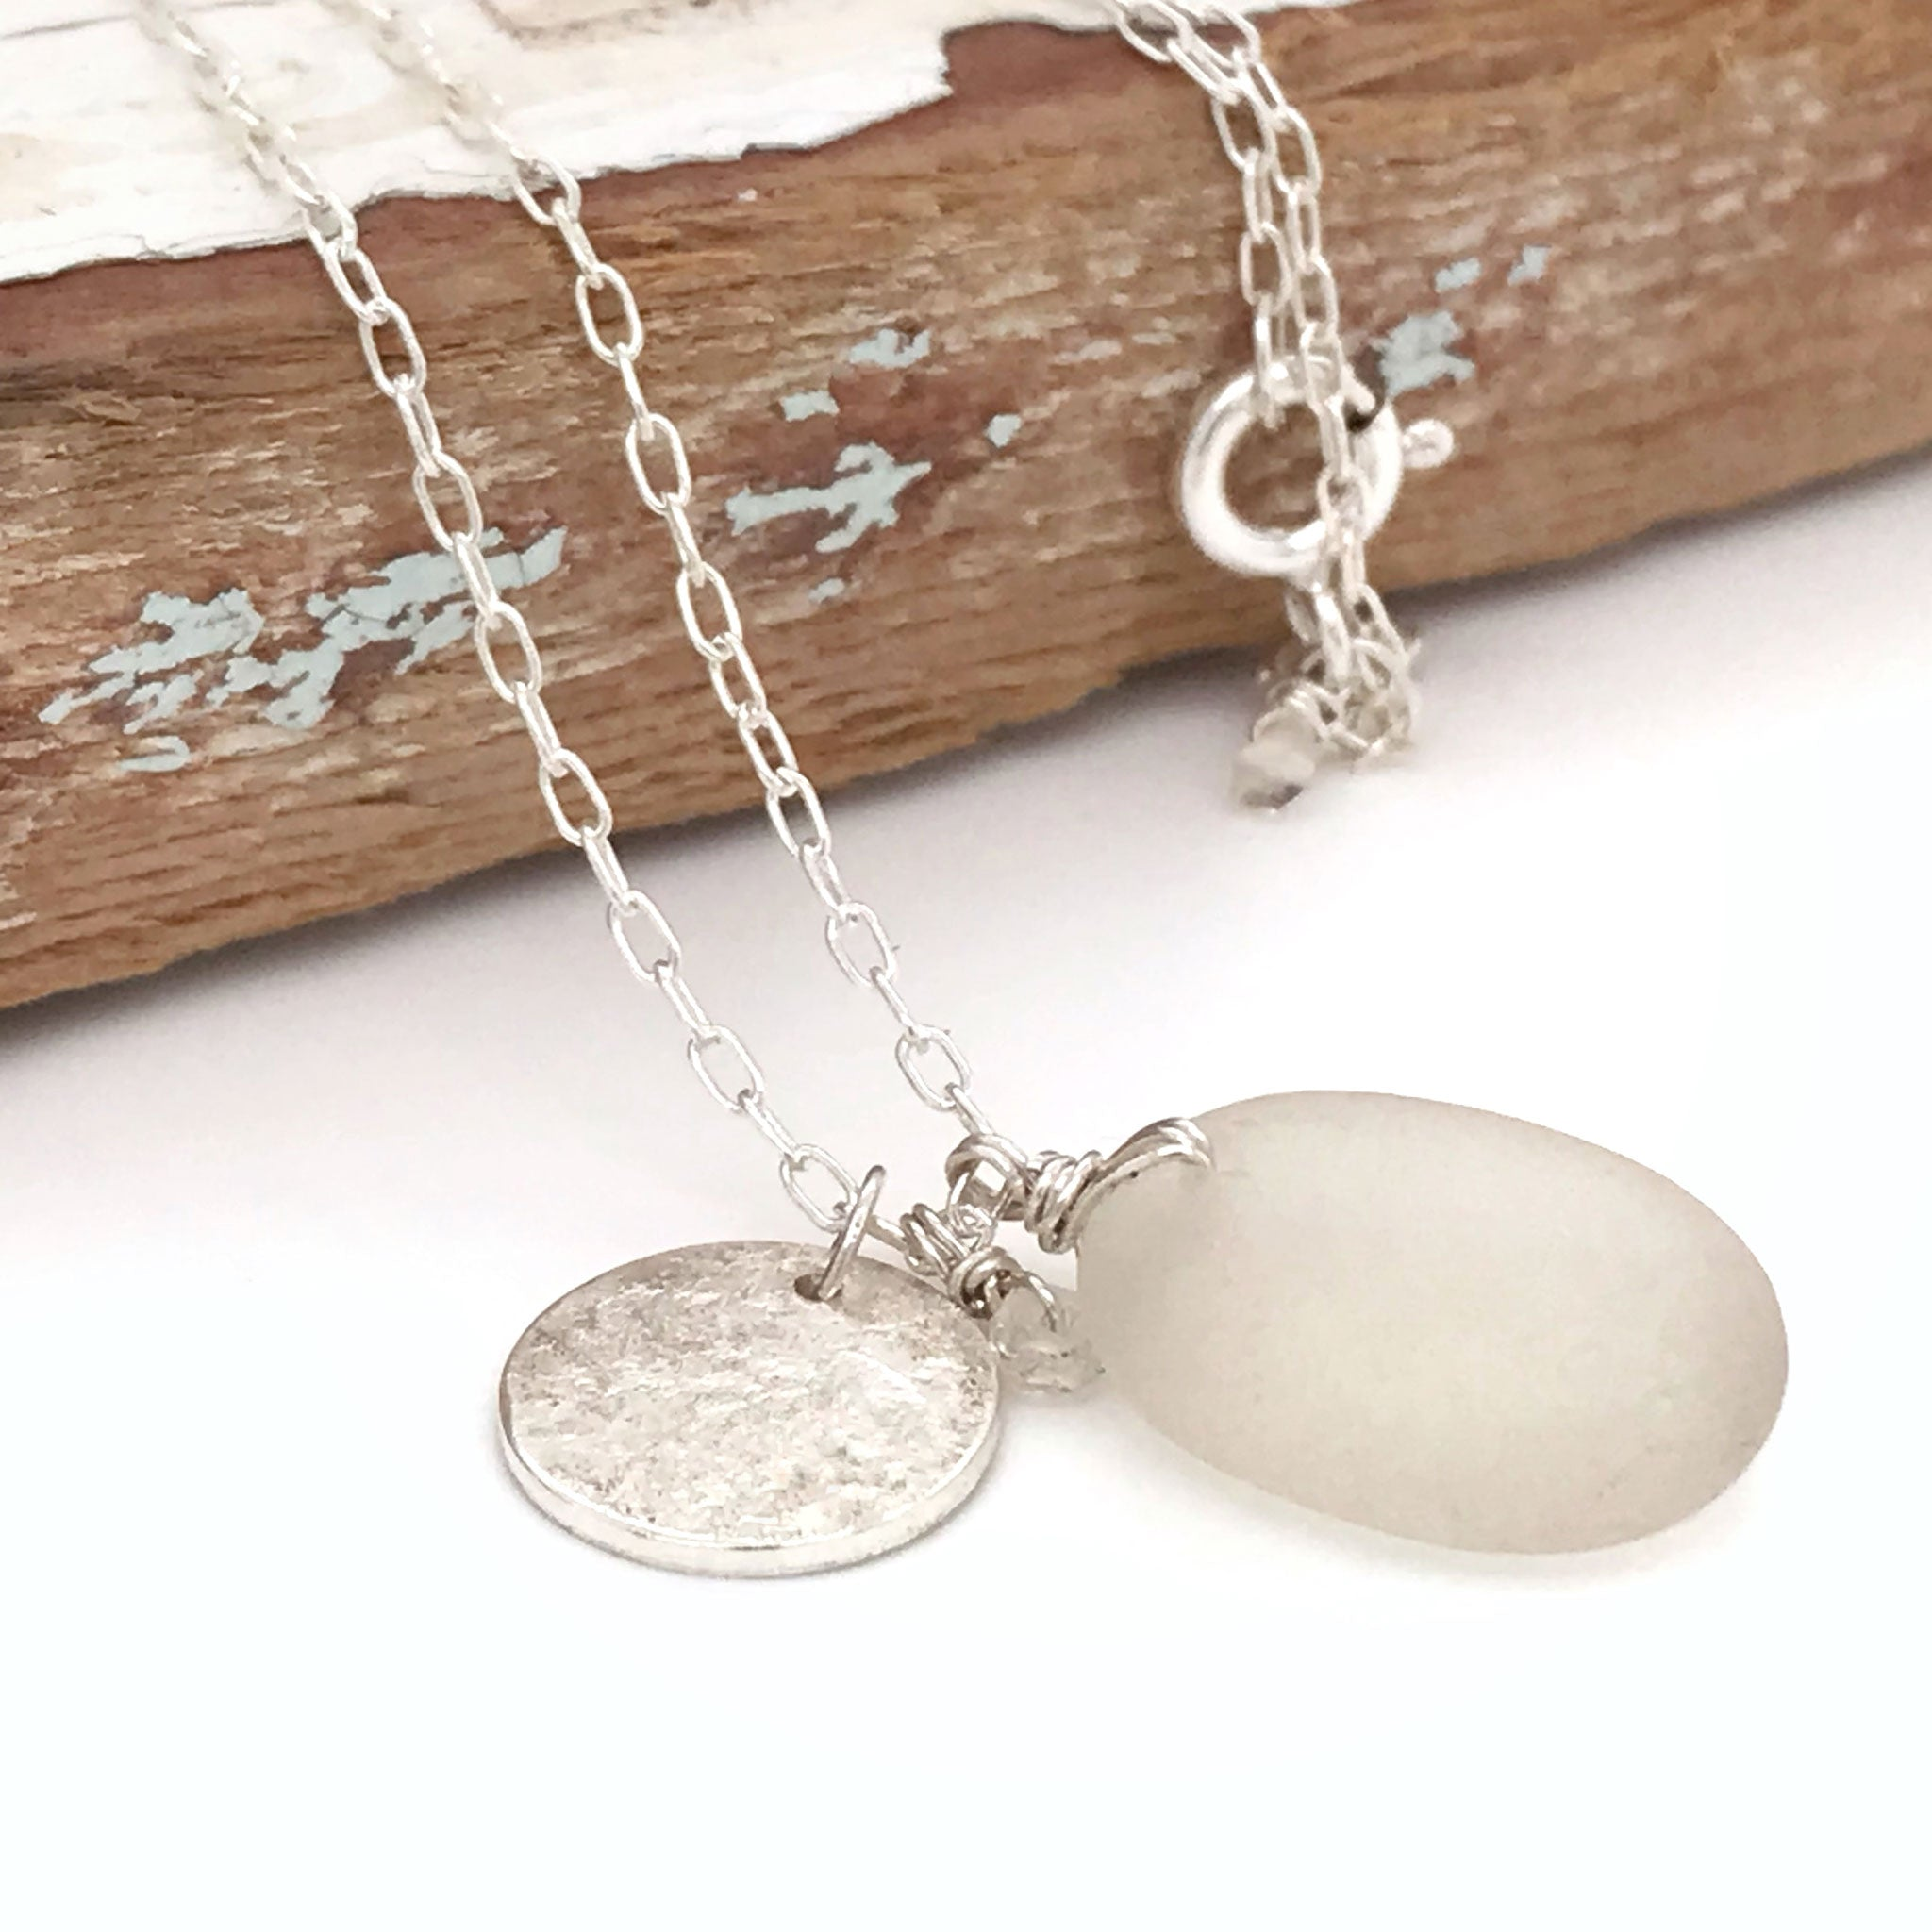 clear seaglass silver necklace with disc charm and aquamarines kriket broadhurst jewellery